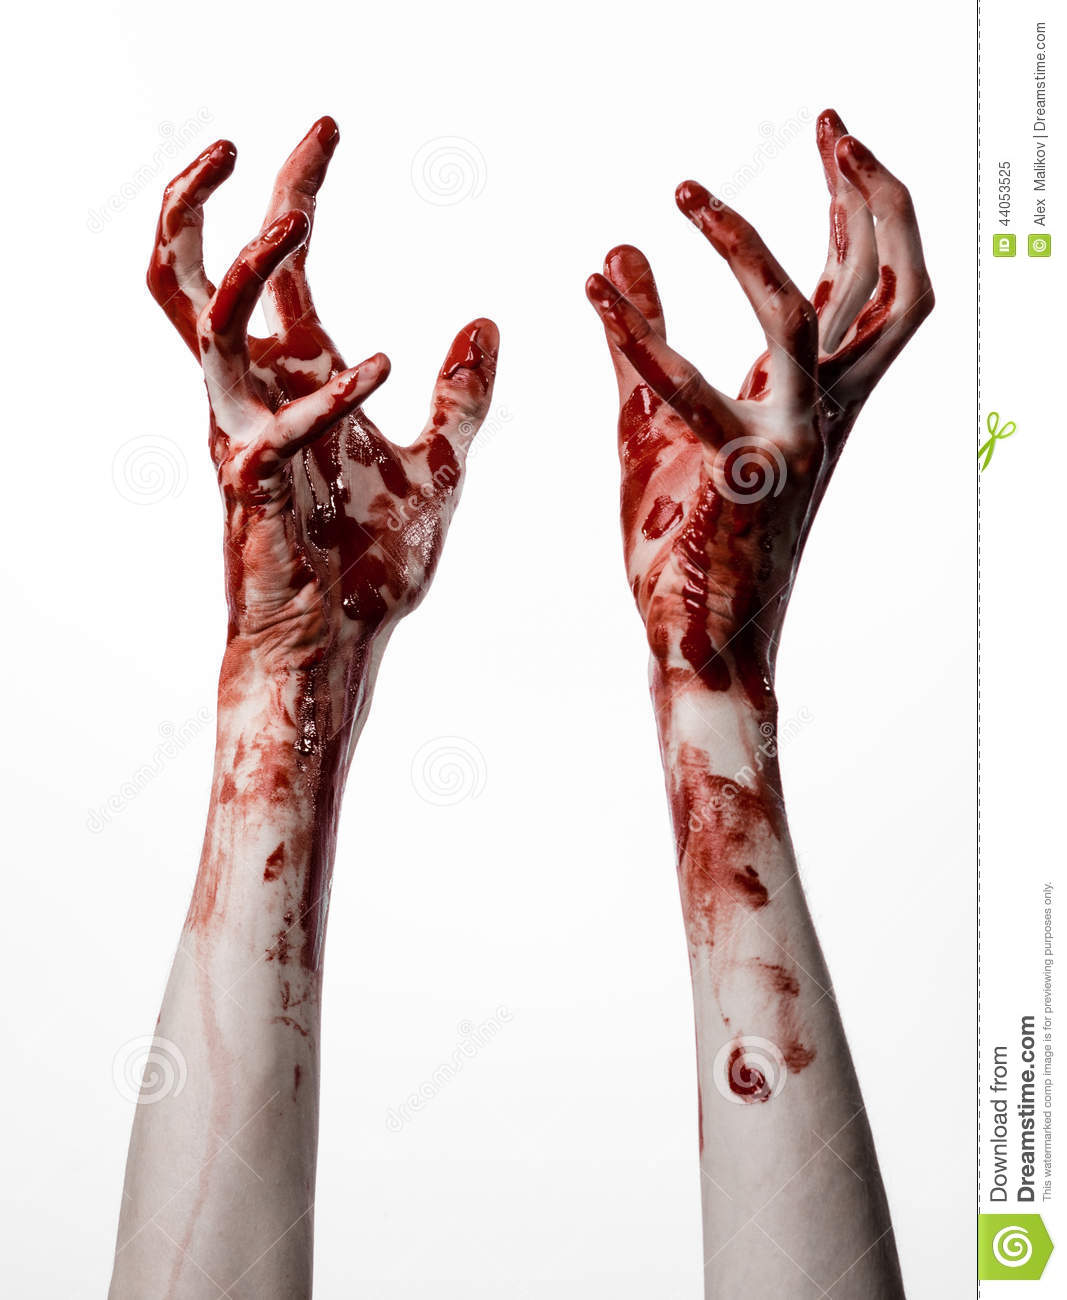 bloody hands on a white background  zombie  demon  maniac helping hand clipart religion helping hand clipart religion